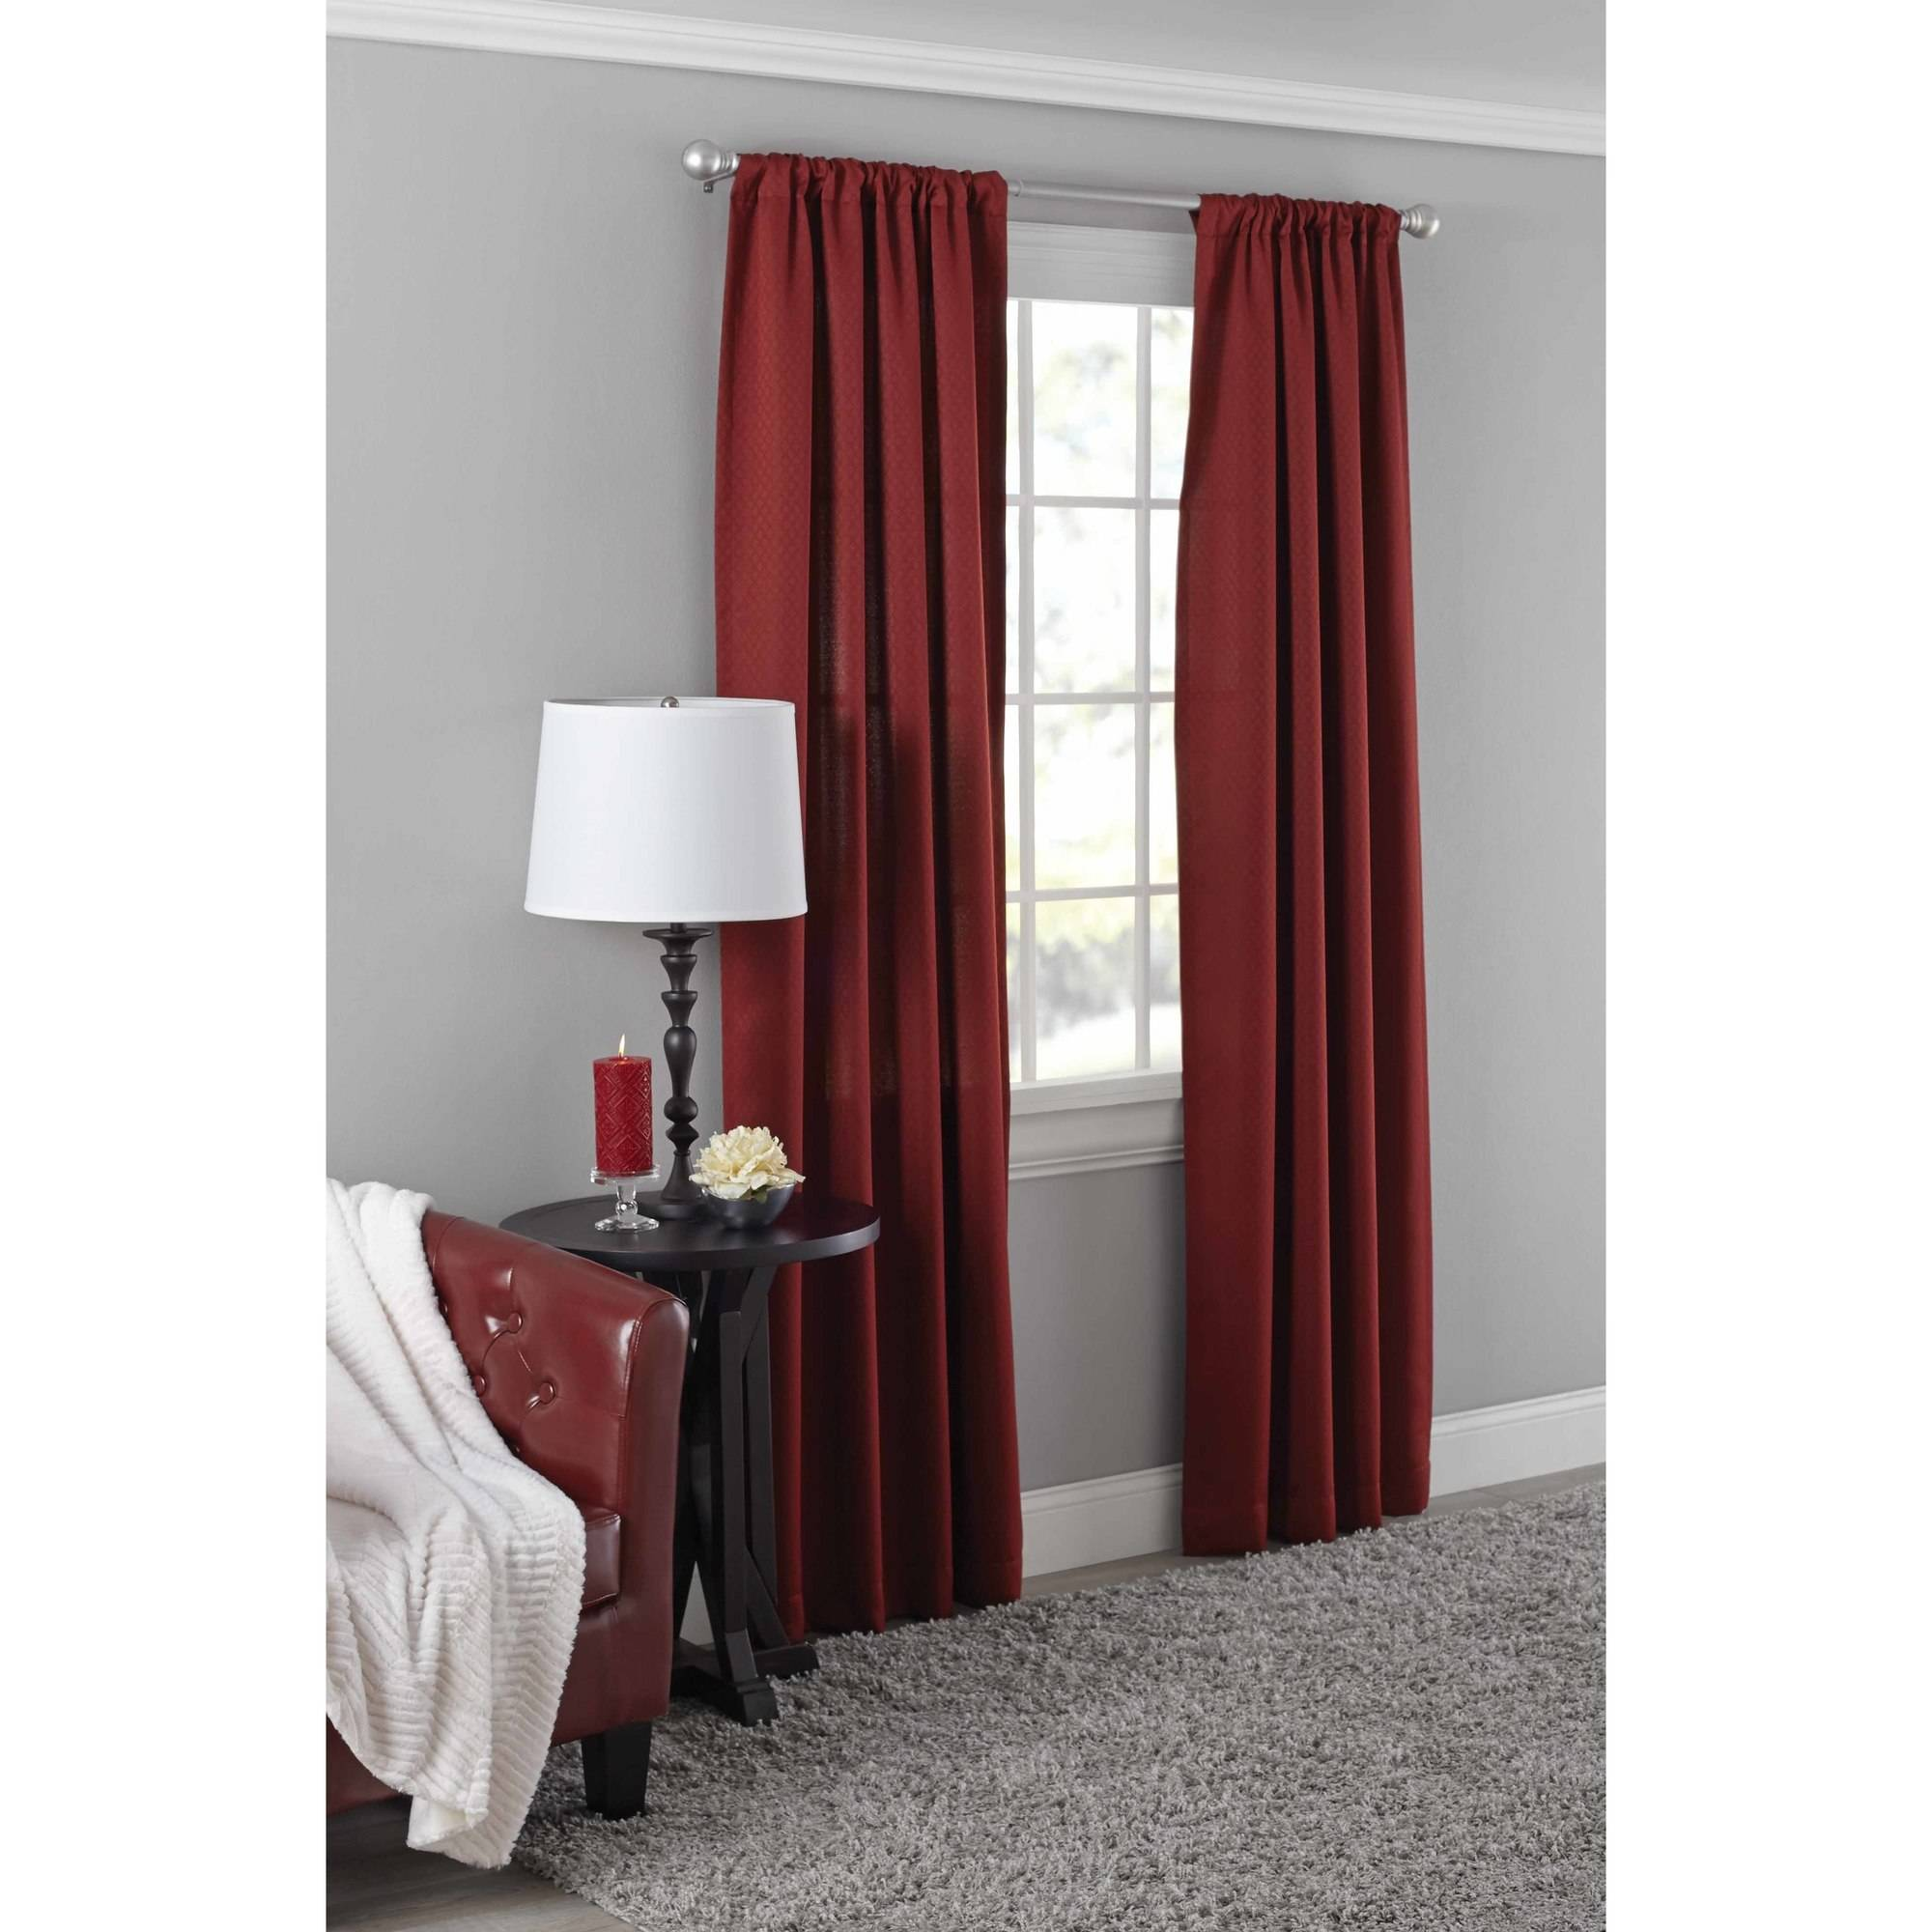 Mainstays Diamond Room Darkening Curtain Panel in Multiple Sizes and Colors